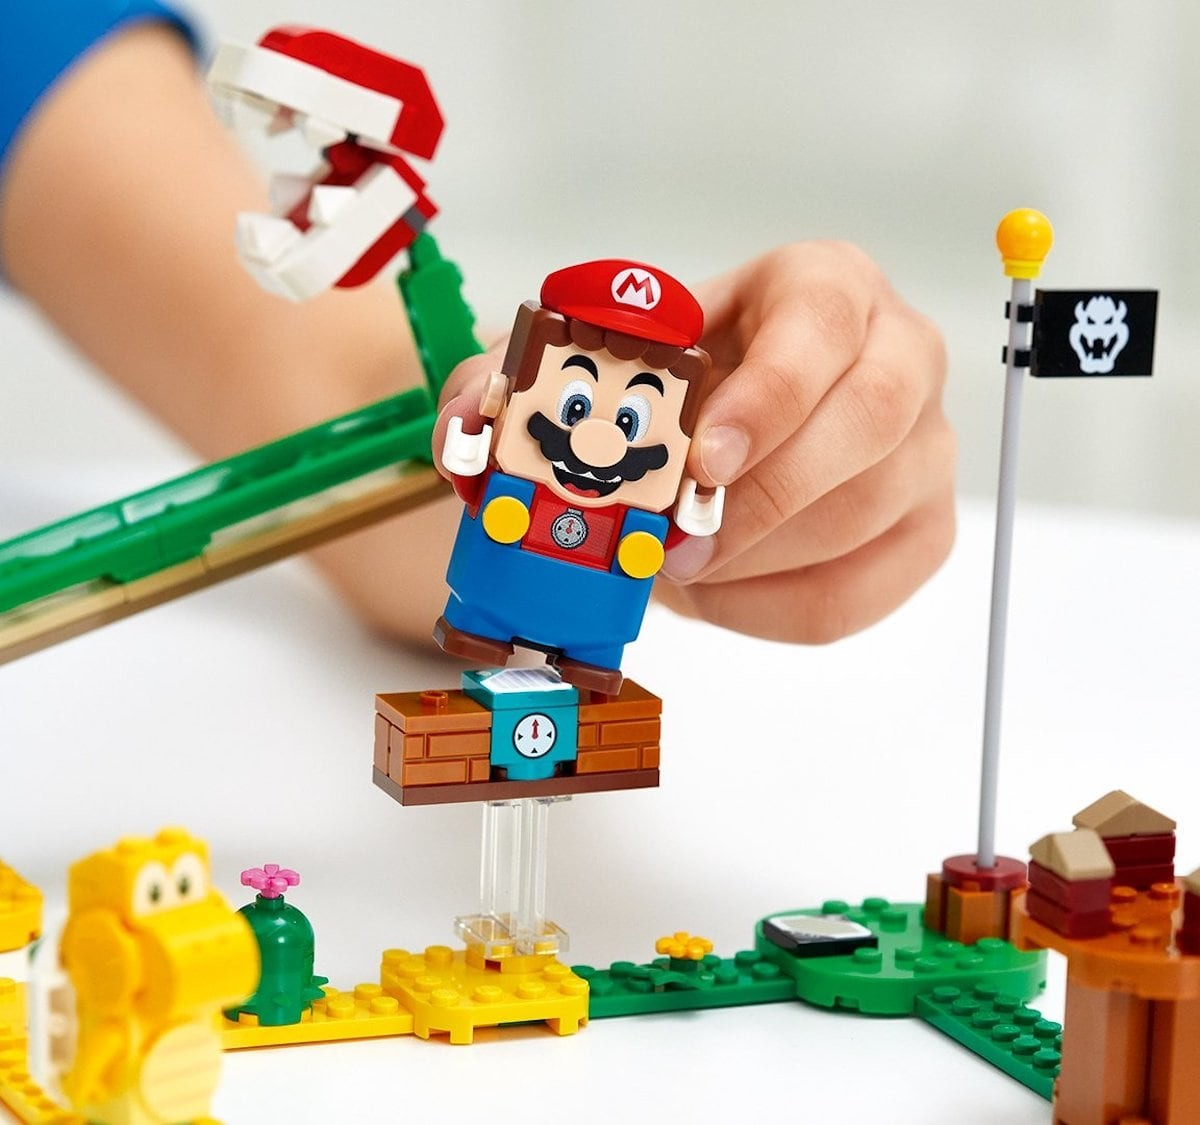 LEGO Super Mario Interactive Building Sets include 10 new expansions to play with